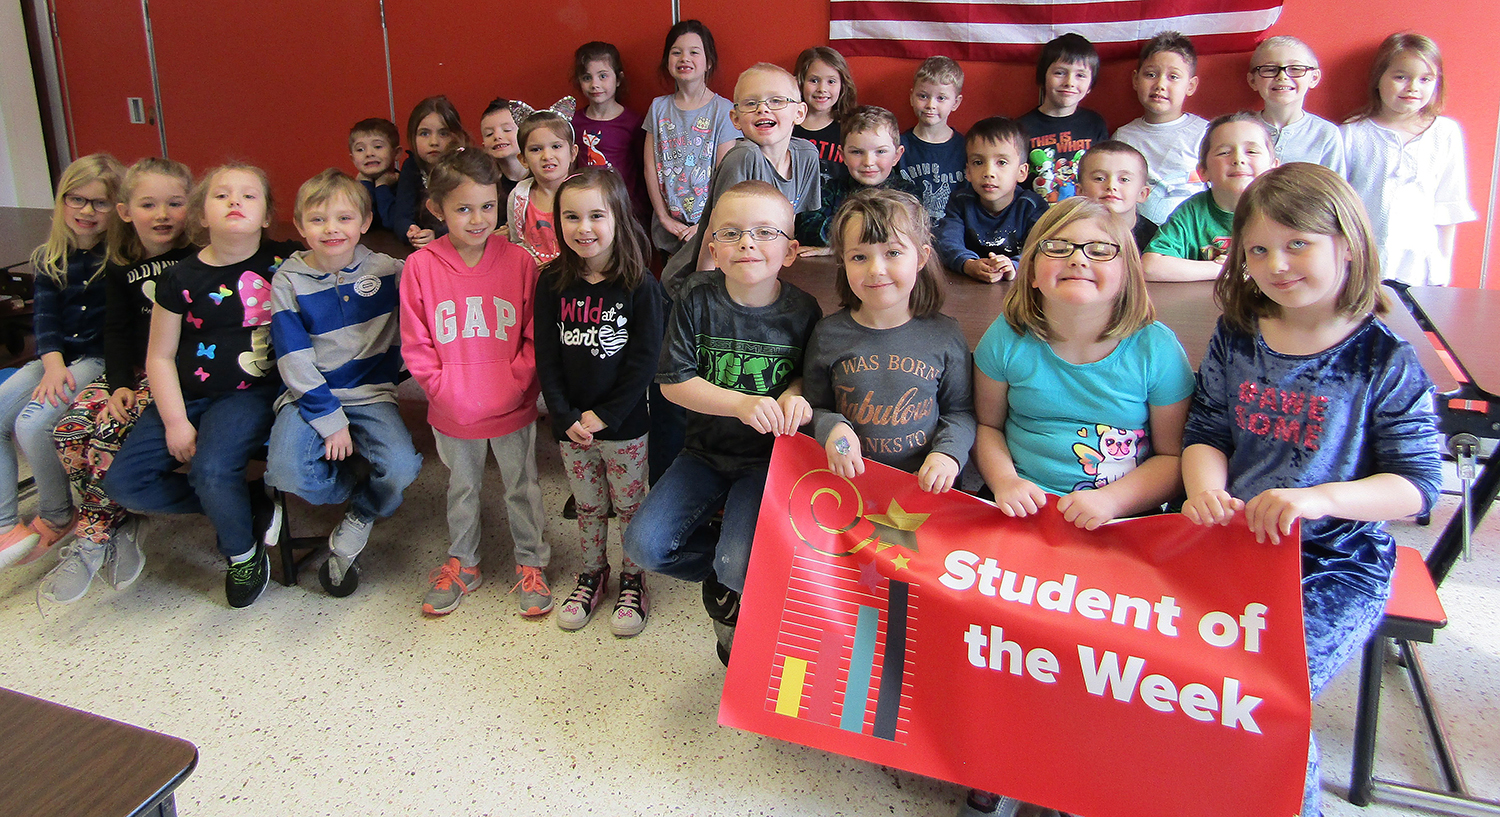 Kindergarten Student of the week